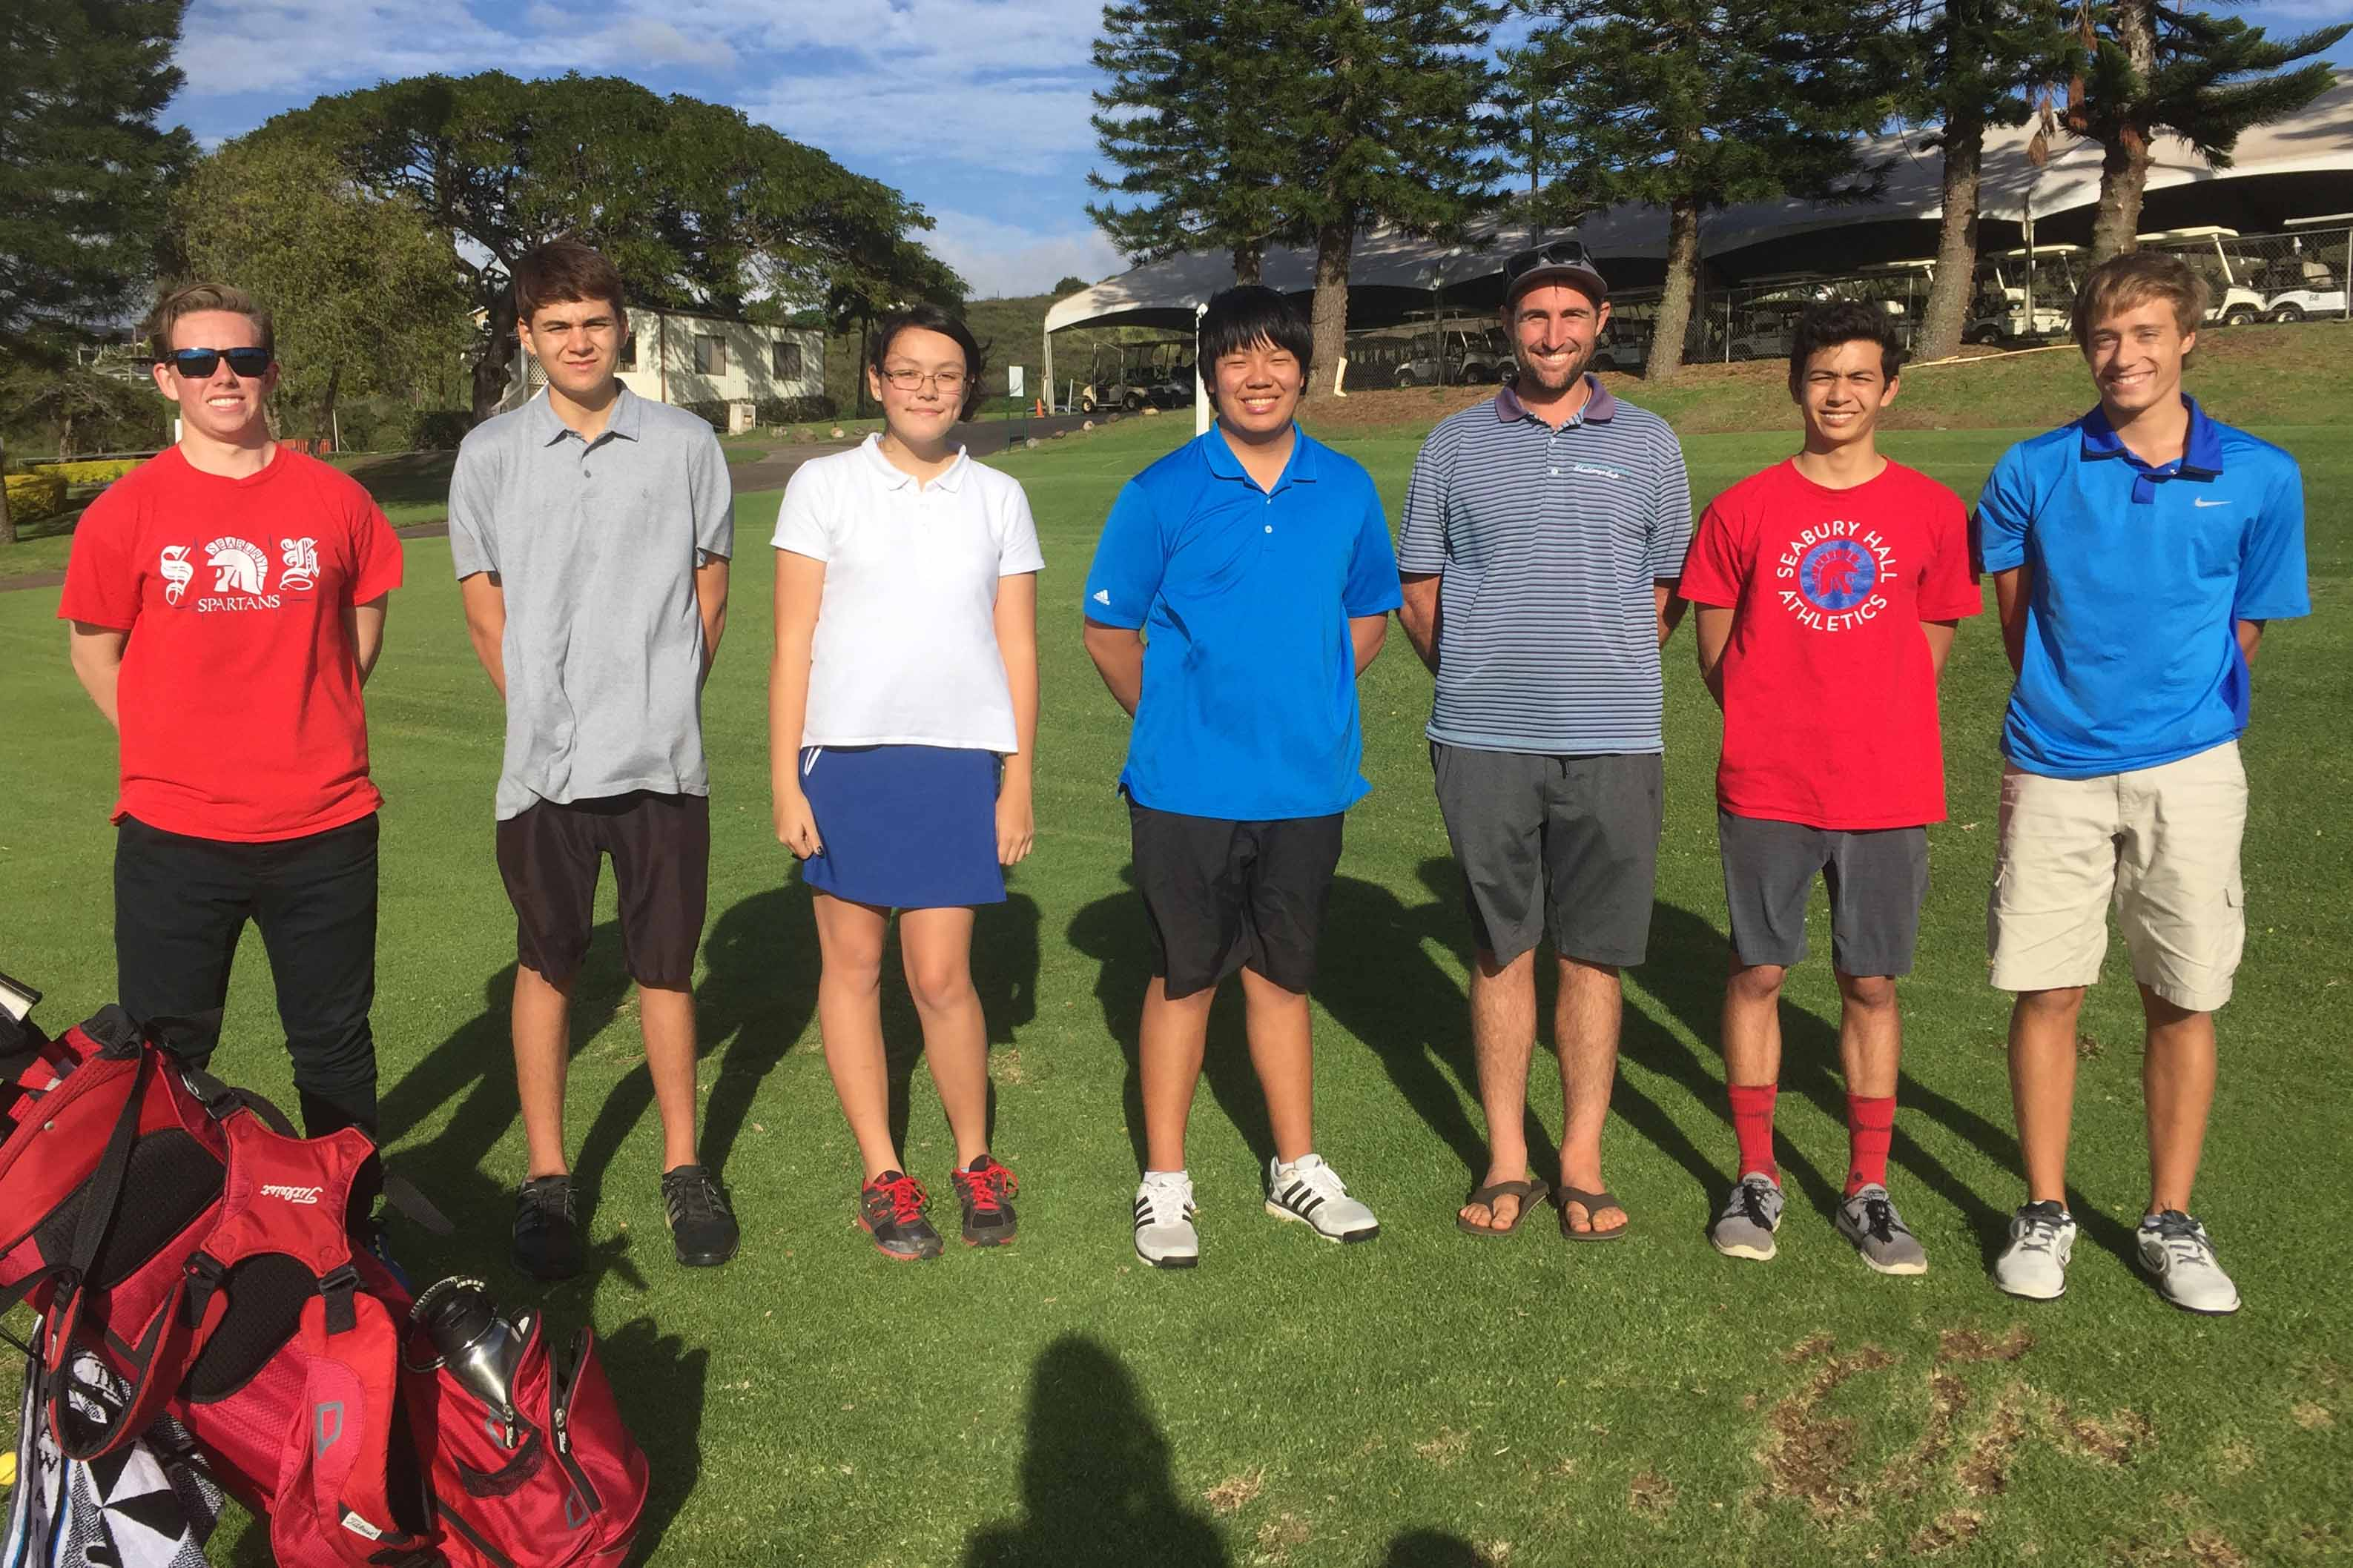 Seabury Hall's golf team is small; there are only six boys and two girls on the team. However, what they may lack in numbers, they more than make up with fun and spirit.